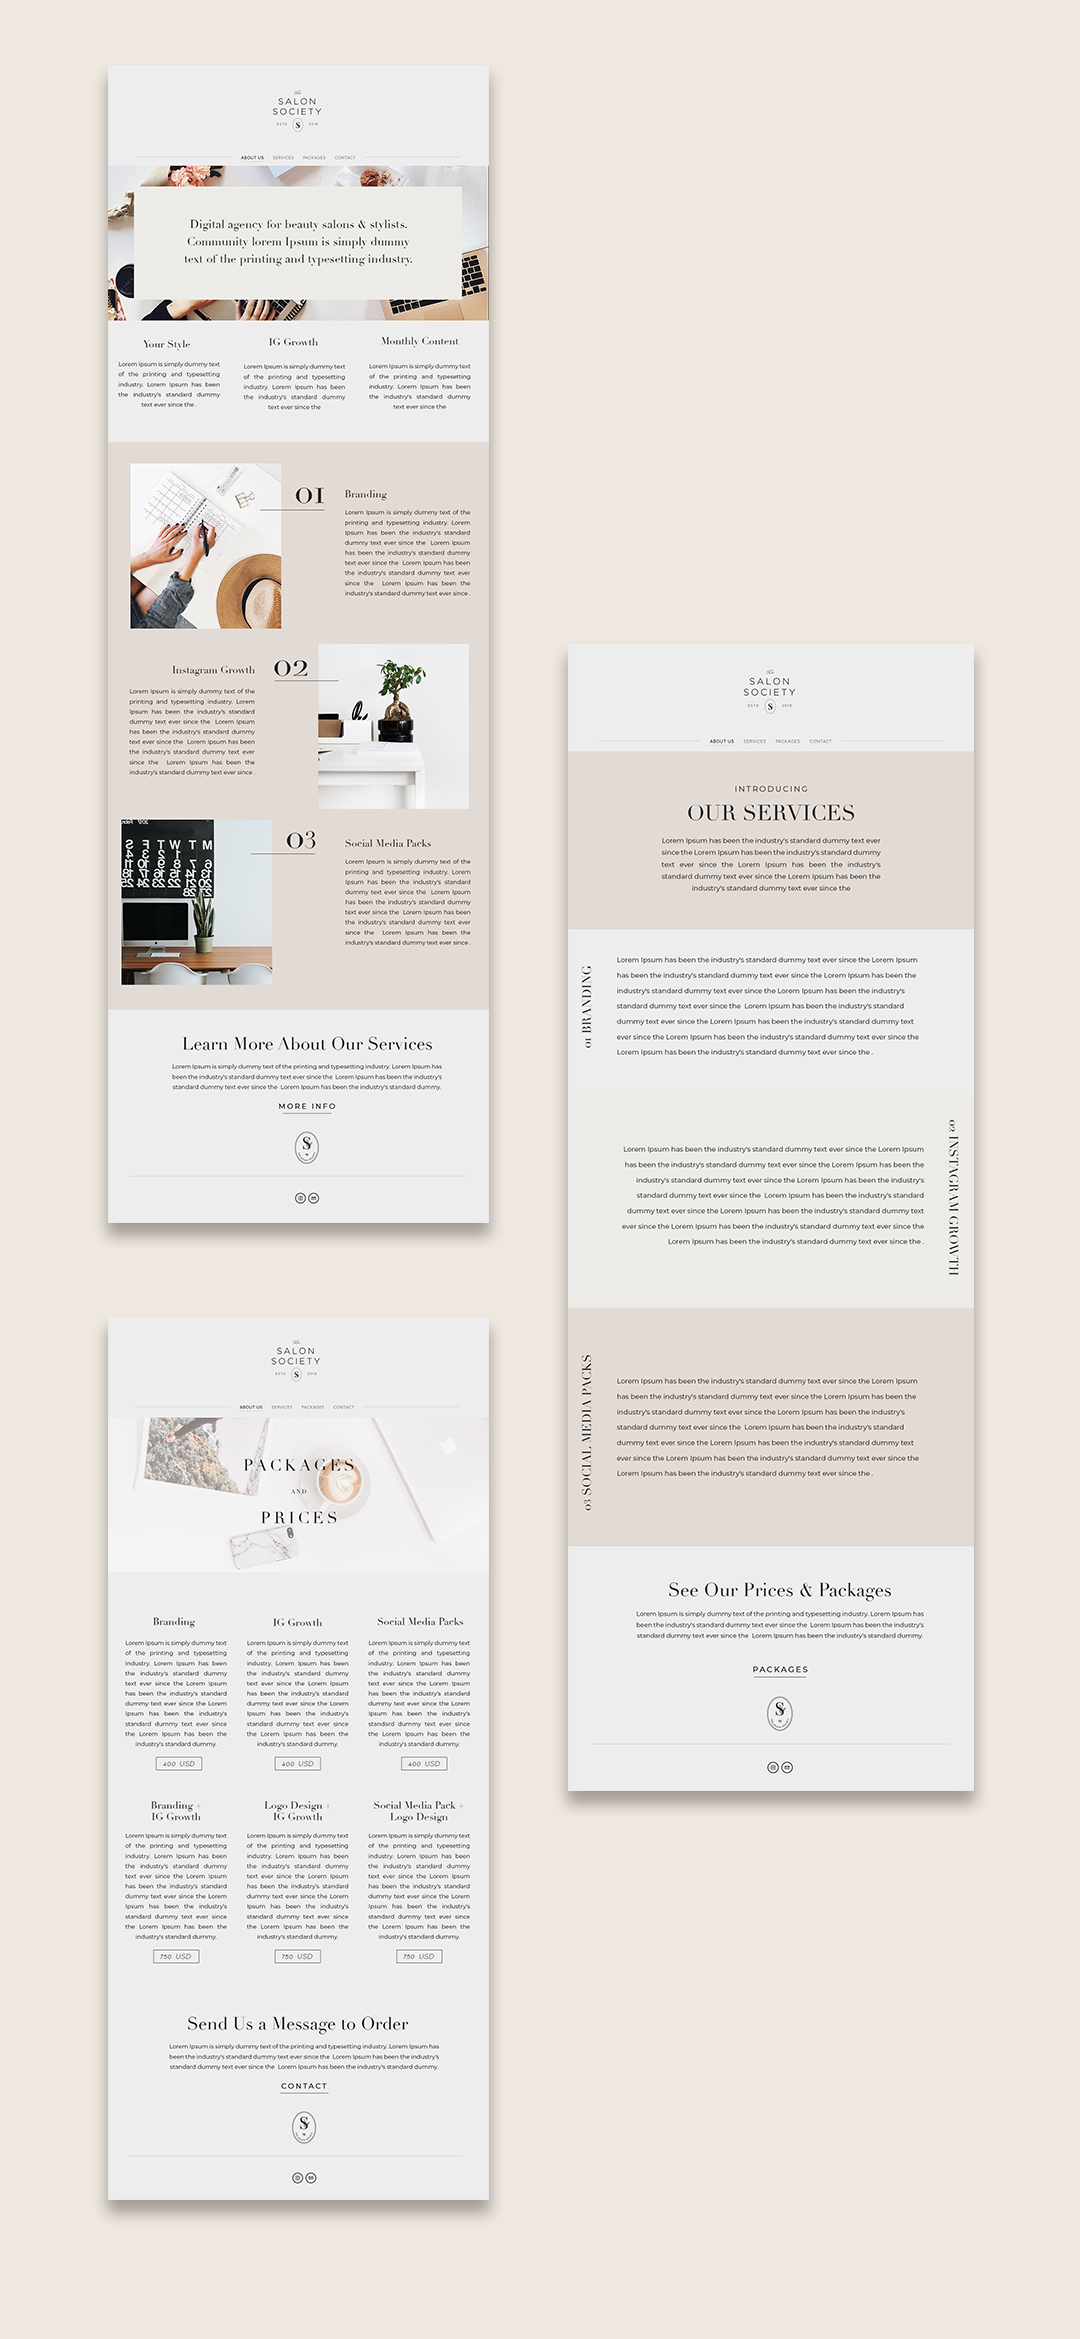 Webdesign By Thehiremeproject Webdesign Logodesign Logo Branding Brandidentity Graphicdesign Design Wor Web Design Online Web Design Web Design Quotes